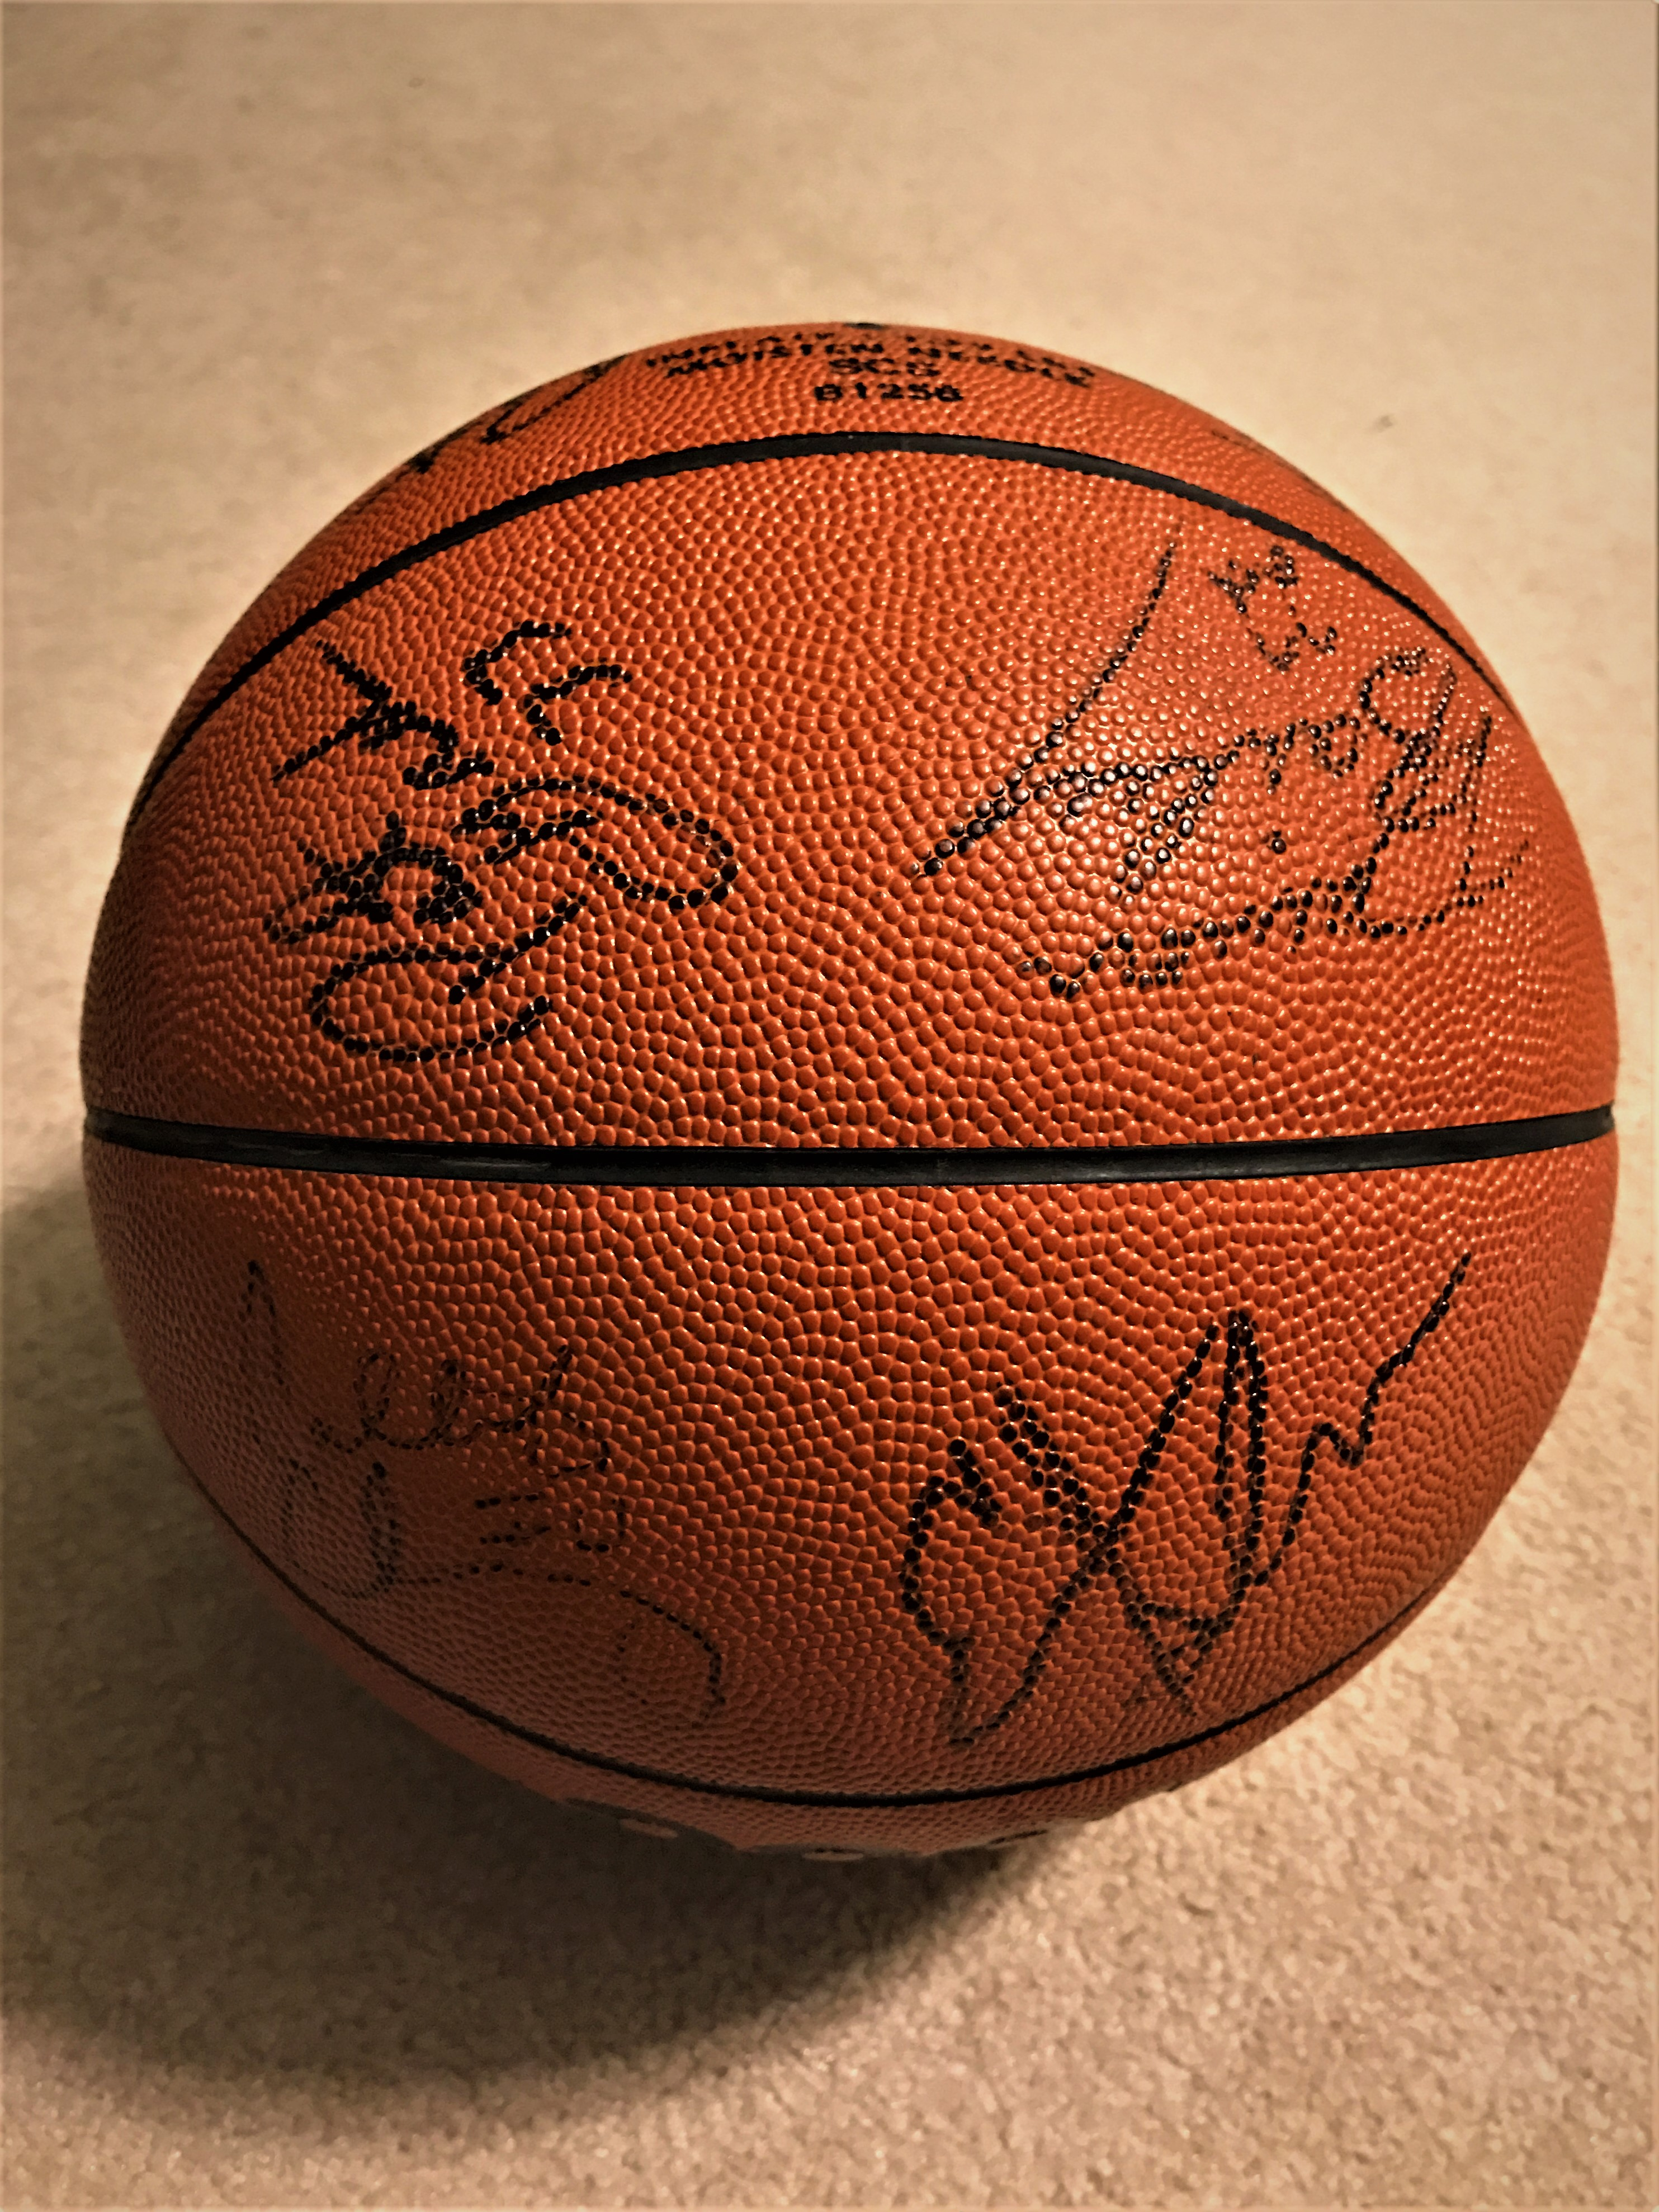 1990-91 Indiana Team Signed Basketball and Ticket Stub